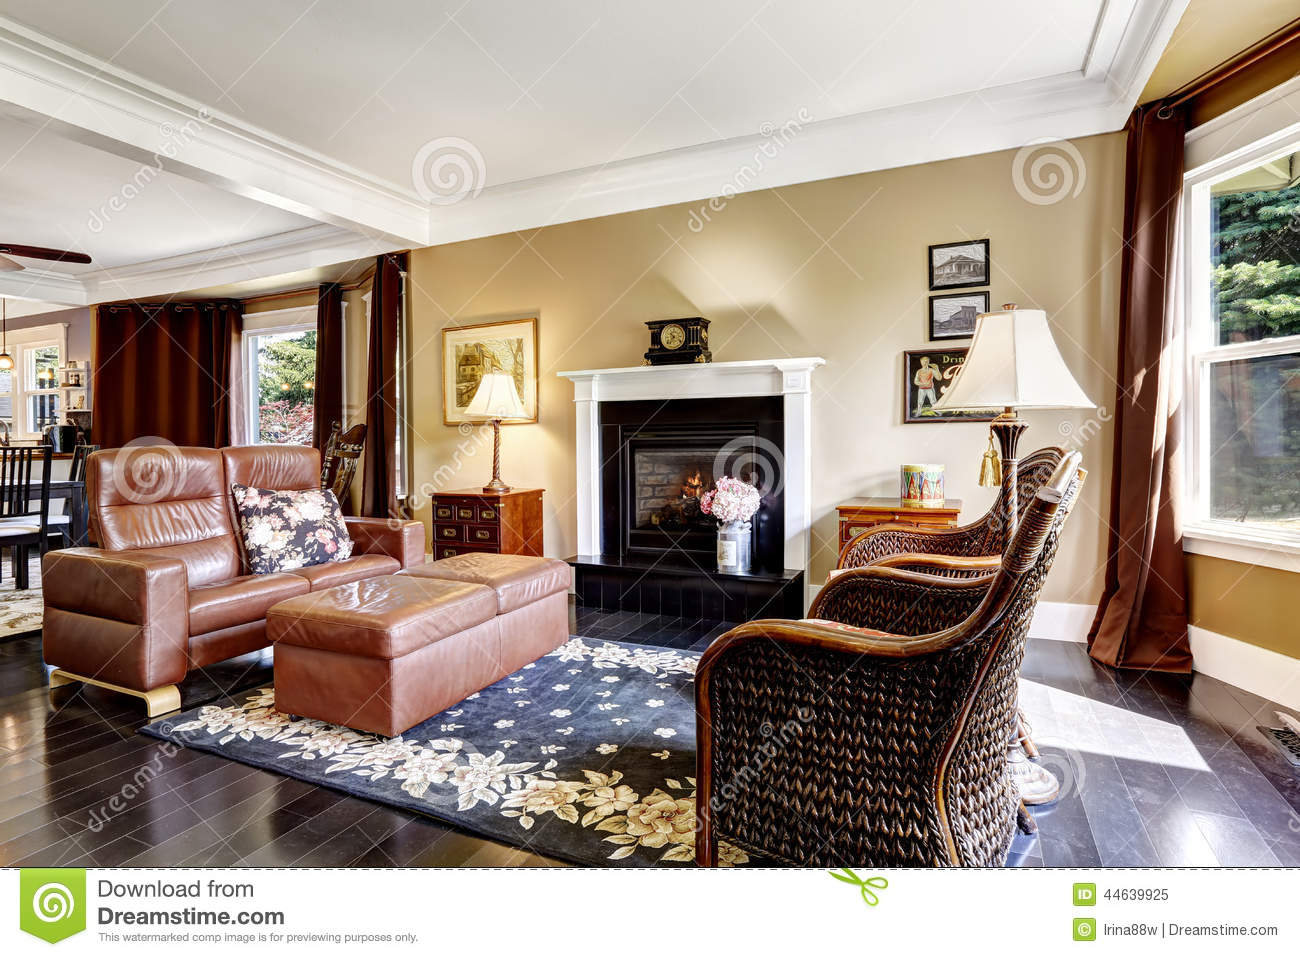 Luxury home interior with fireplace and leather couch Luxury fireplaces luxury homes